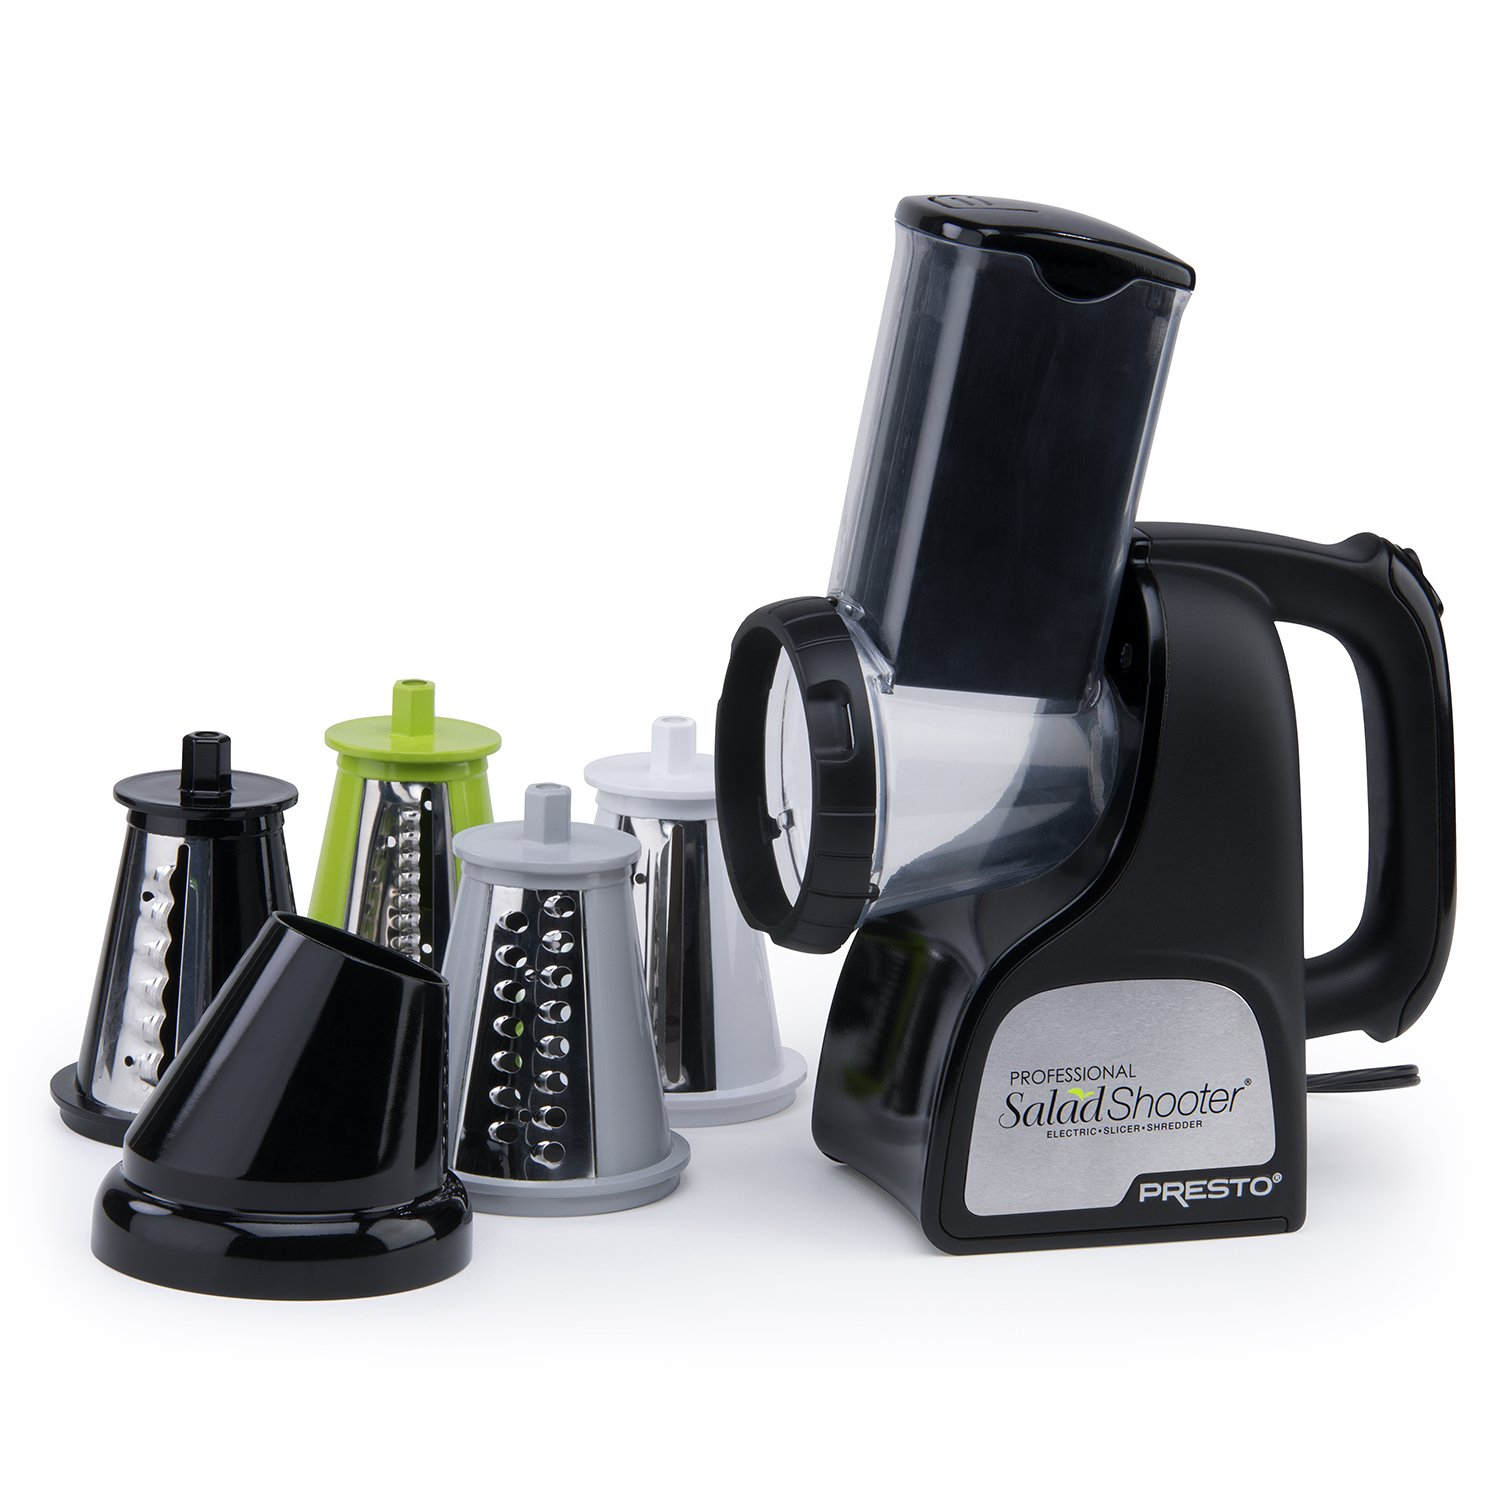 Presto Professional SaladShooter Electric Shredder